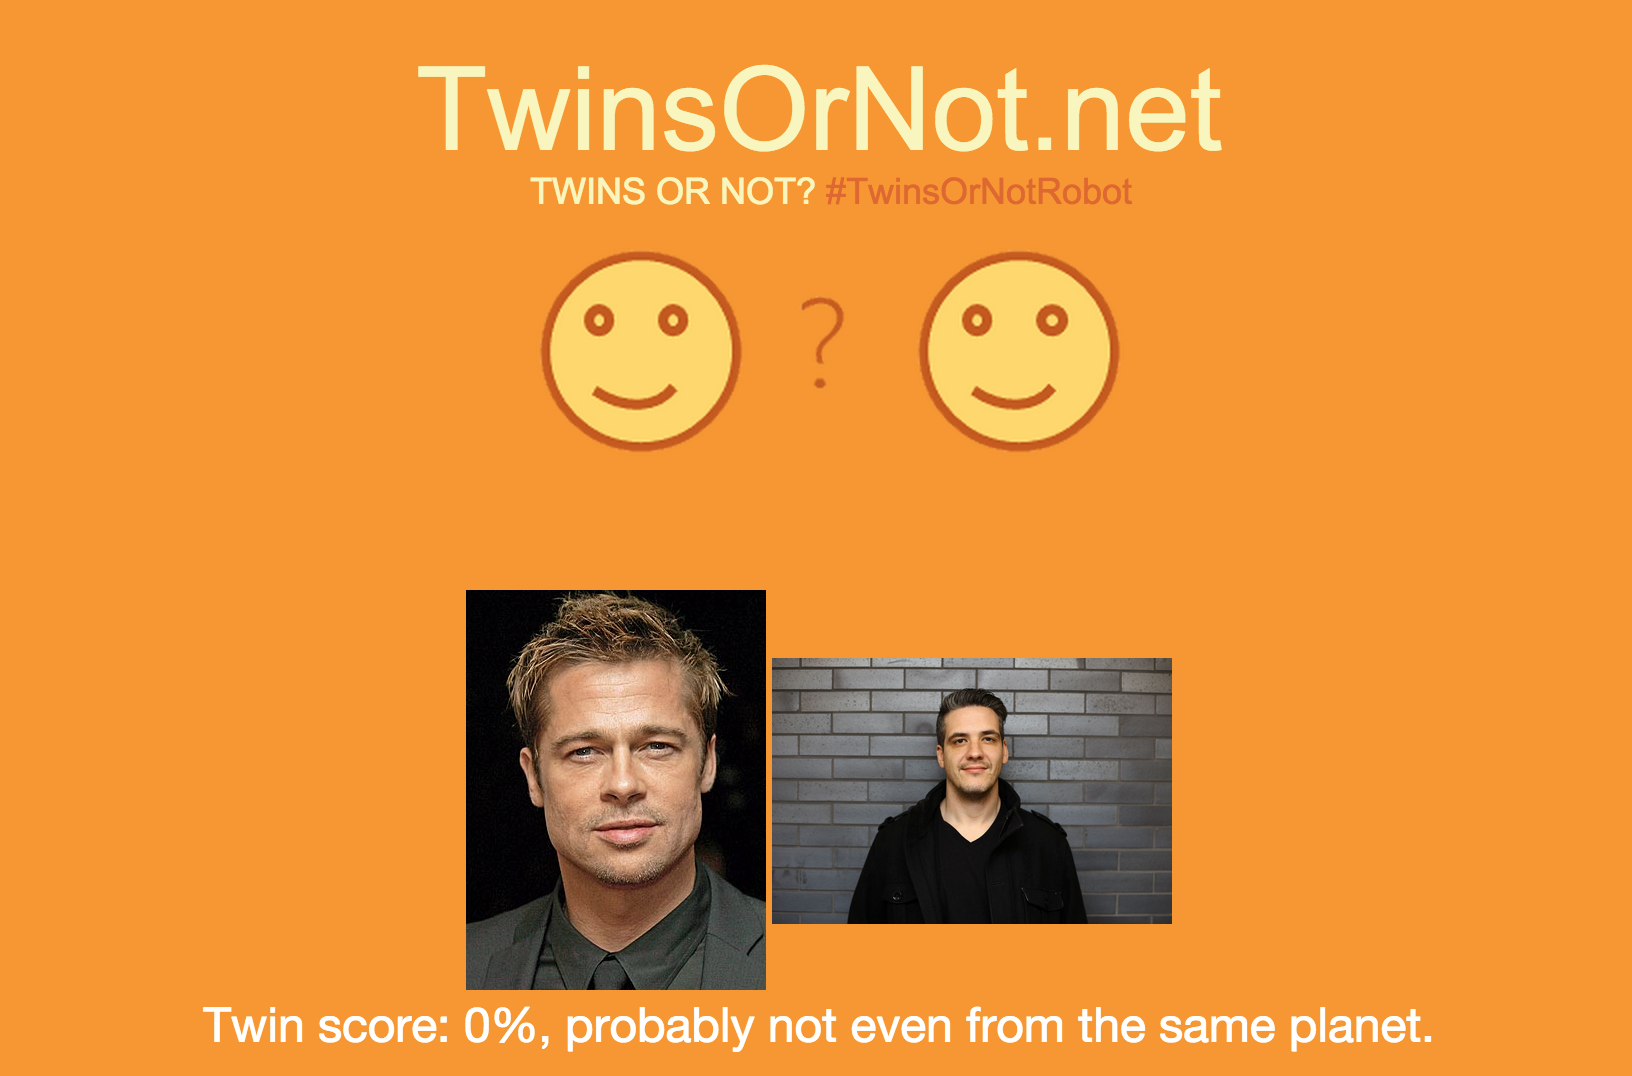 Twins or not